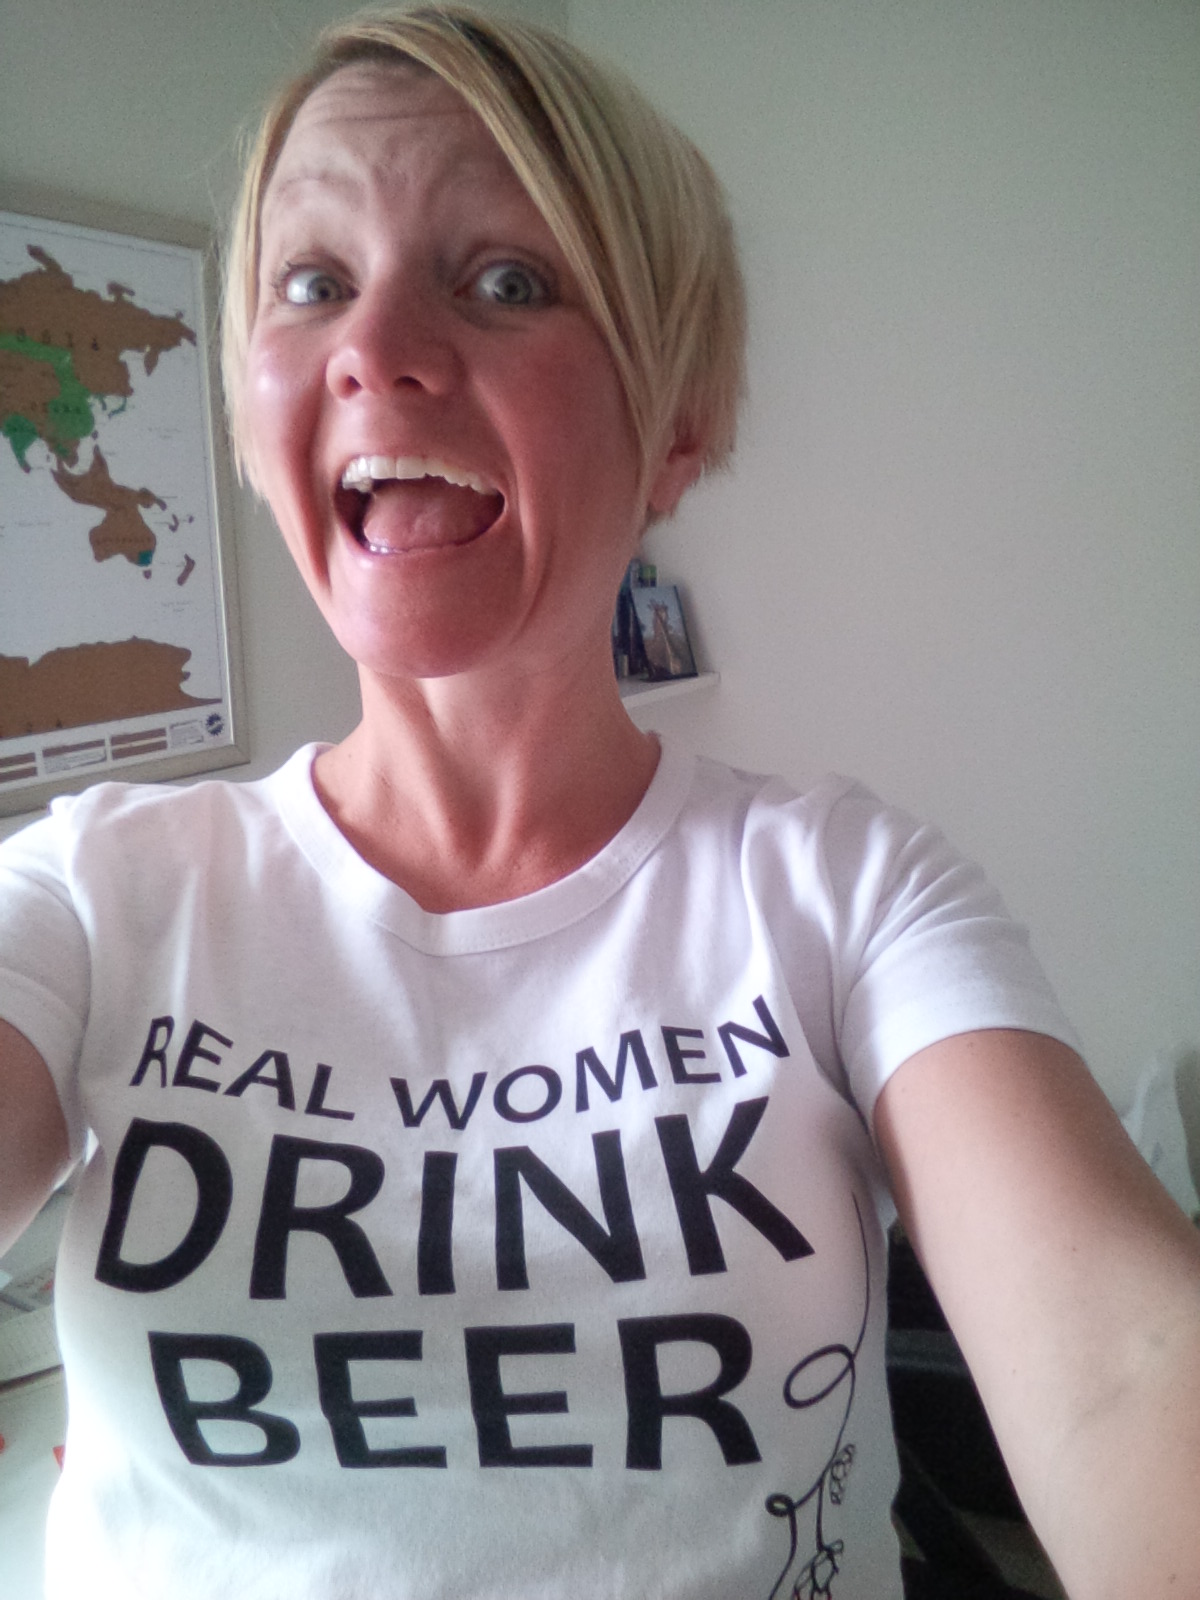 Available at http://www.beershirts.co.za/